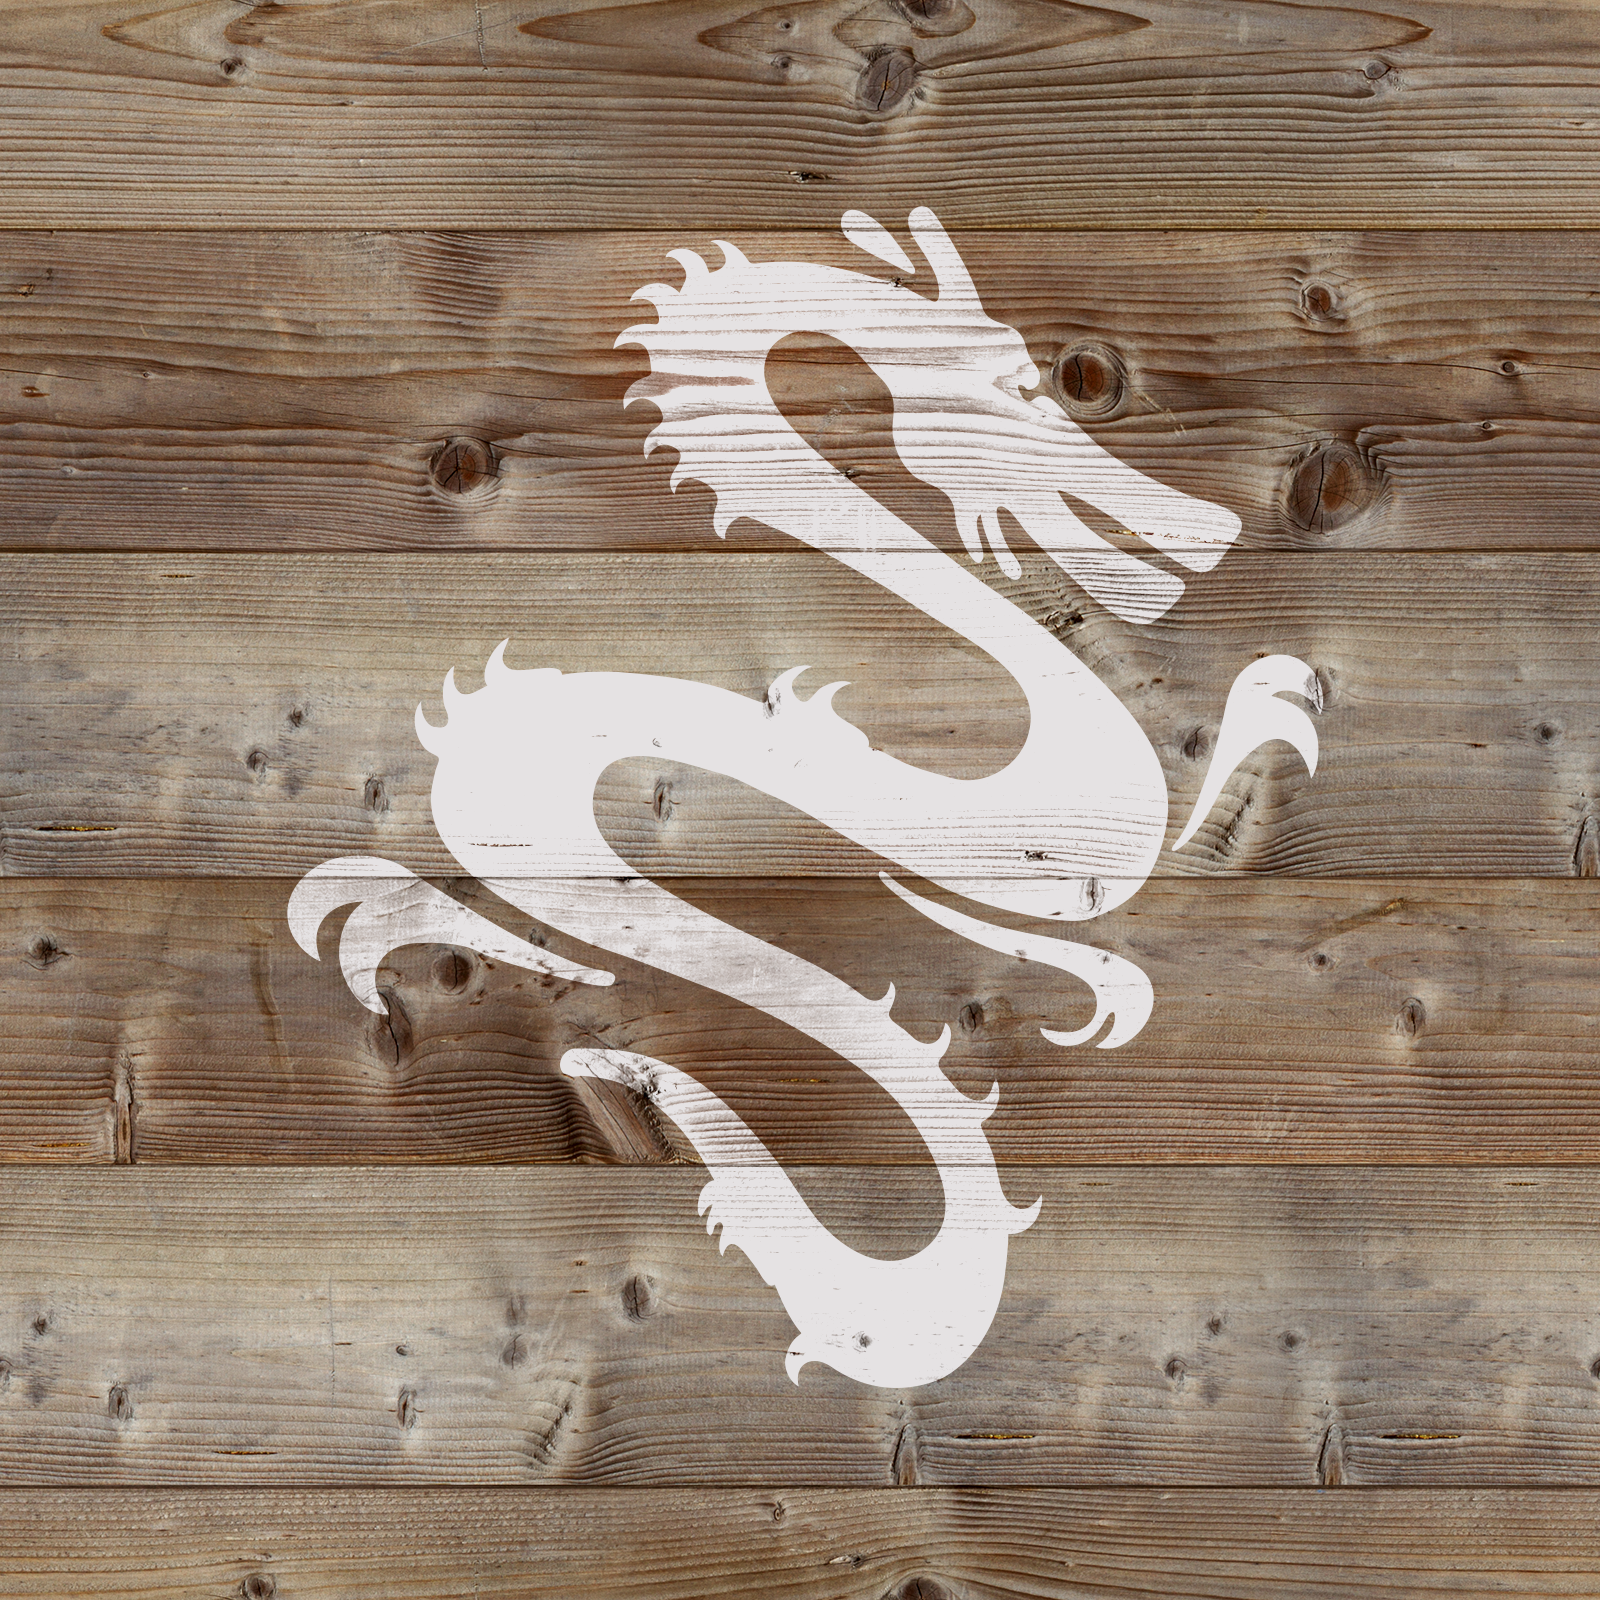 Chinese Dragon Stencil - Reusable Stencils of Chinese Dragon in Multiple Sizes